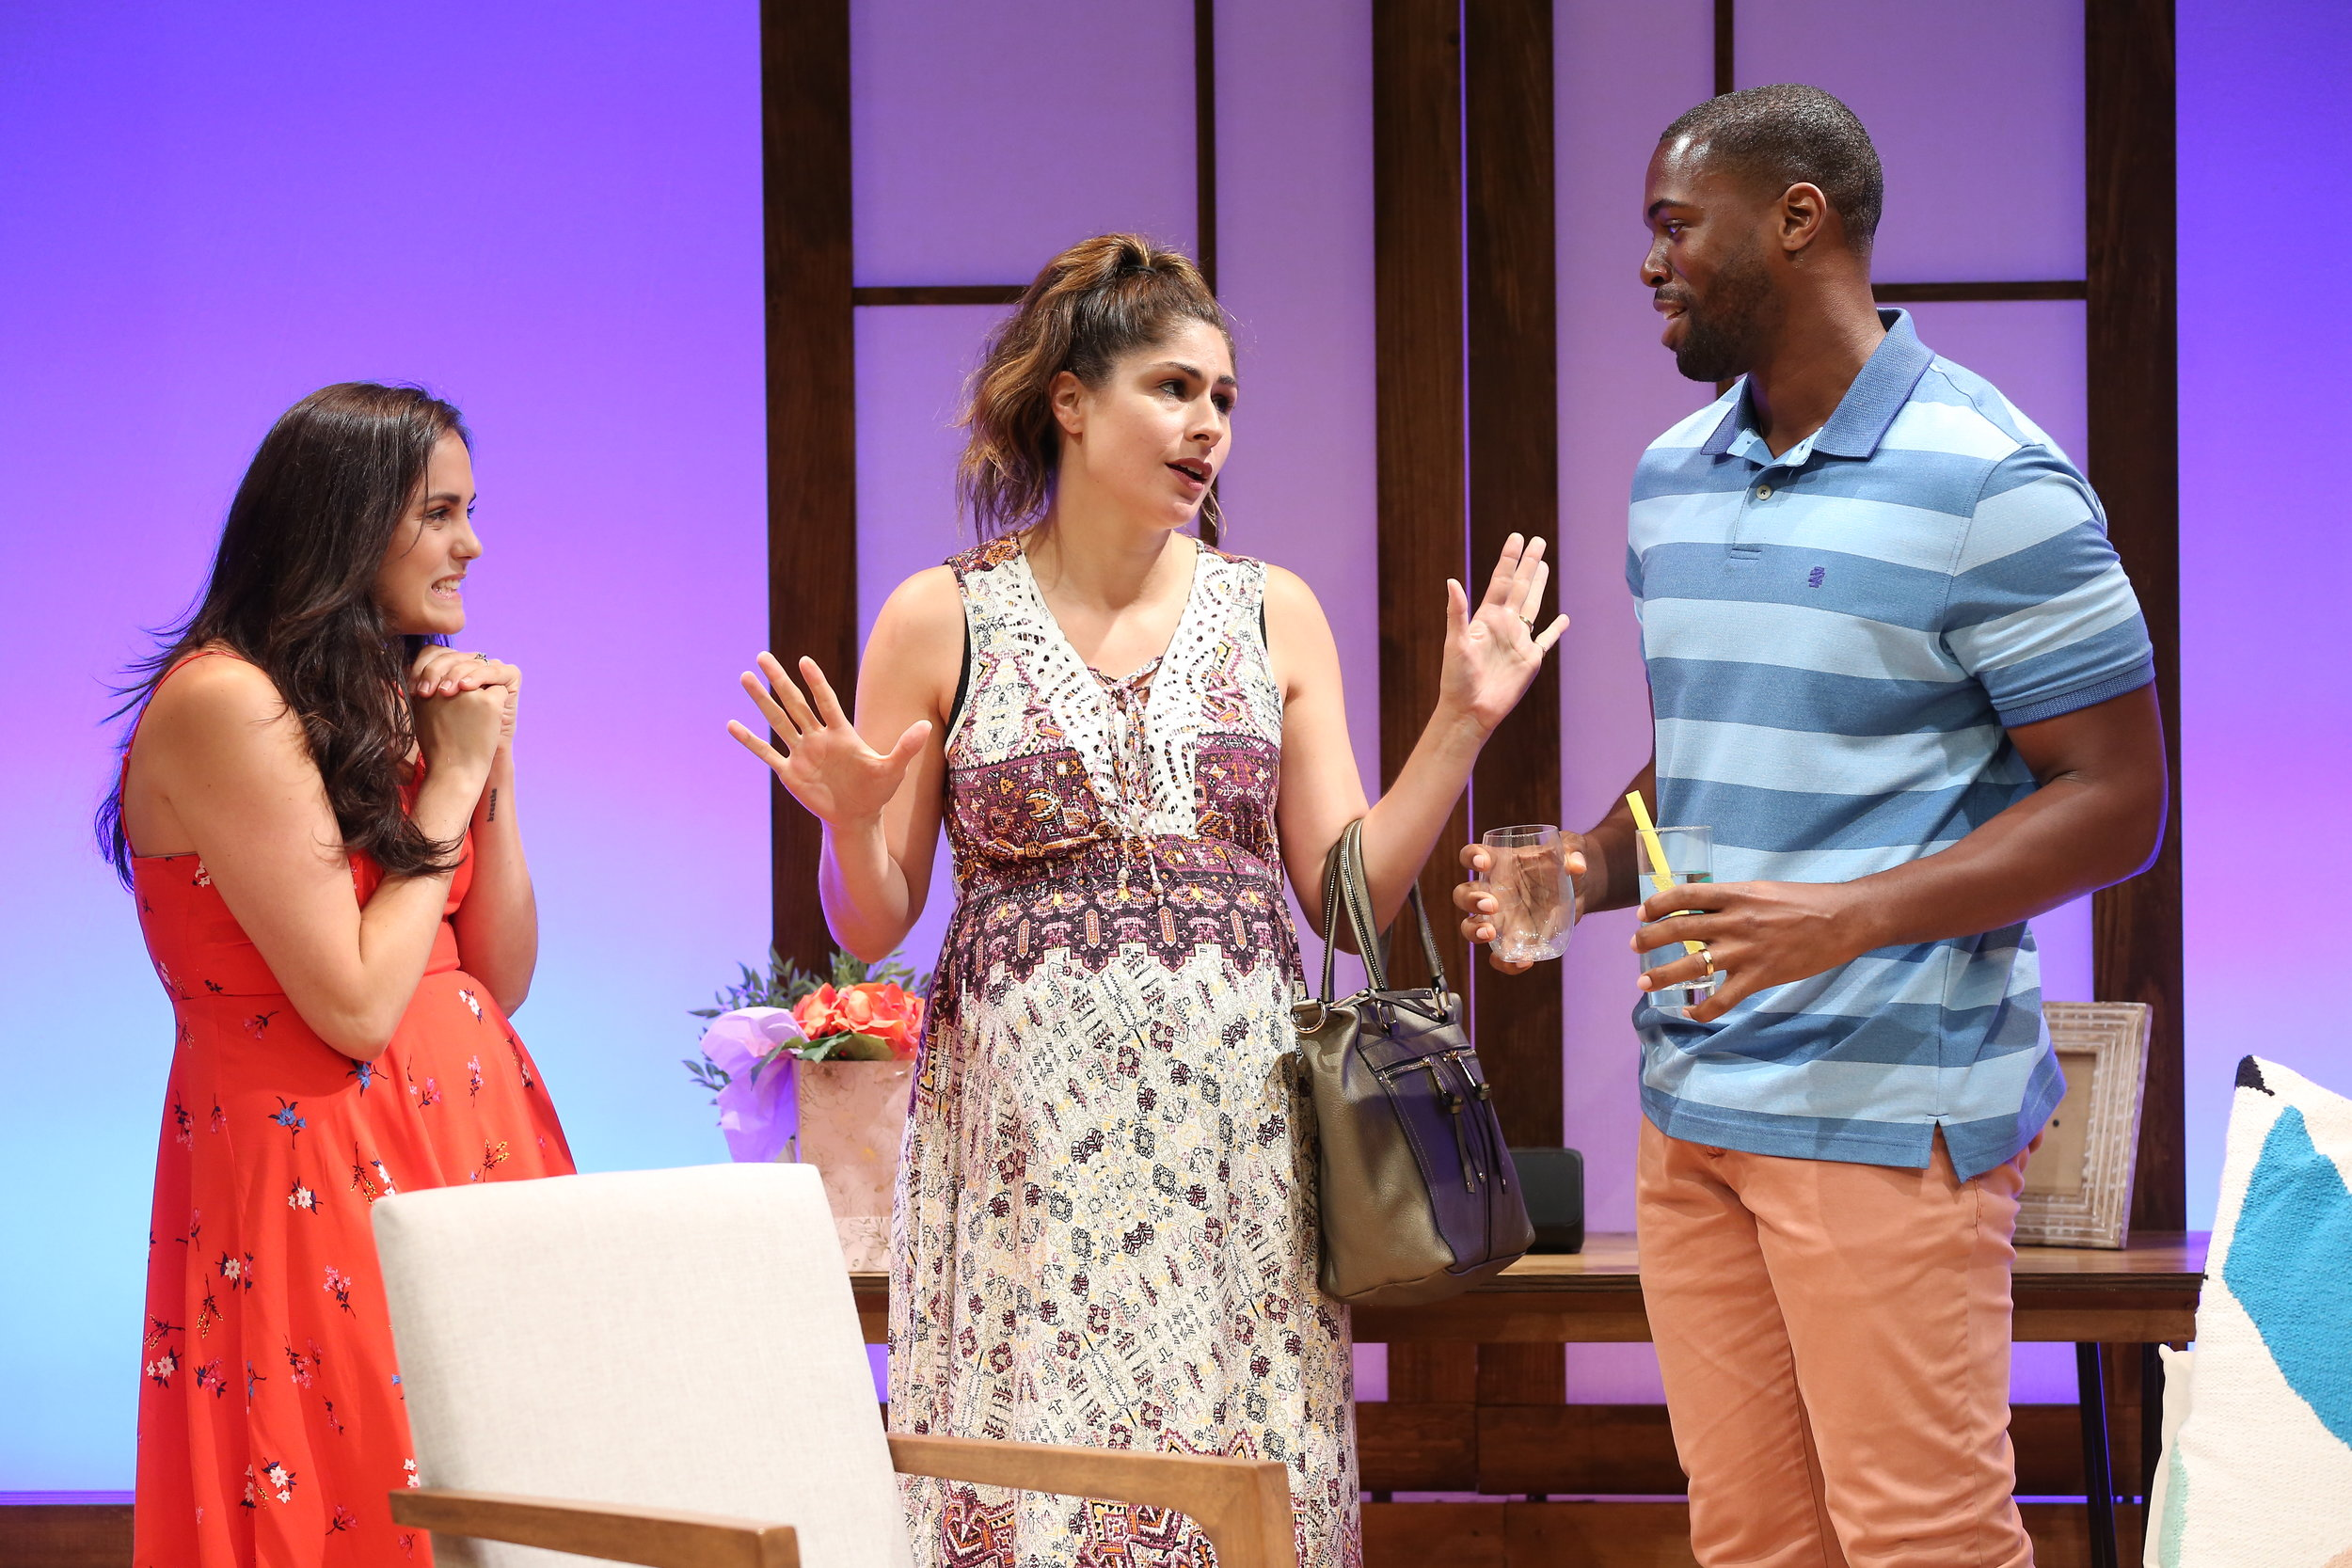 L-R: Rachel Napoleon, Georgia Ximenes Lifsher, Donovan Mitchell in WEDDING BASH by Lindsey Kraft & Andrew Leeds, part of Summer Shorts 2017 at 59E59 Theaters. Photo by Carol Rosegg